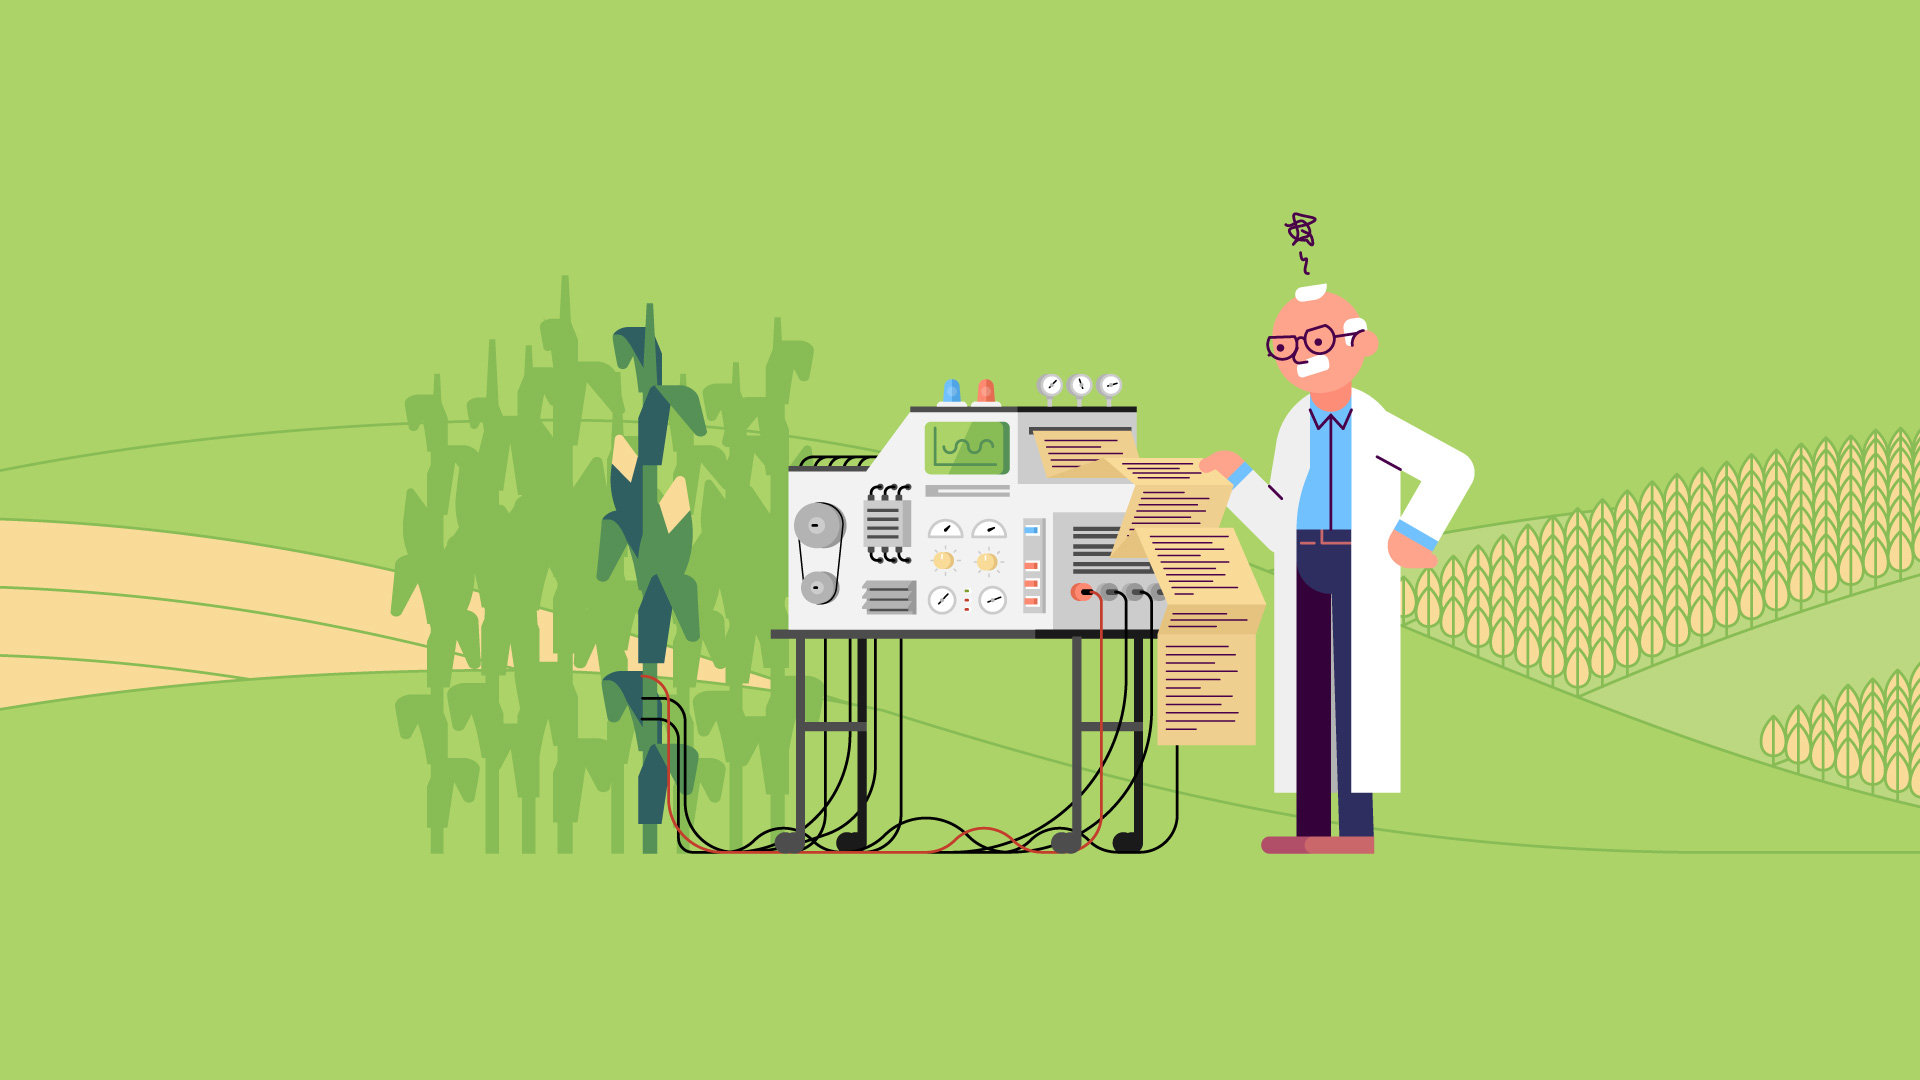 Illustration of a frustrated scientist with a complex machine analyzing a corn plant